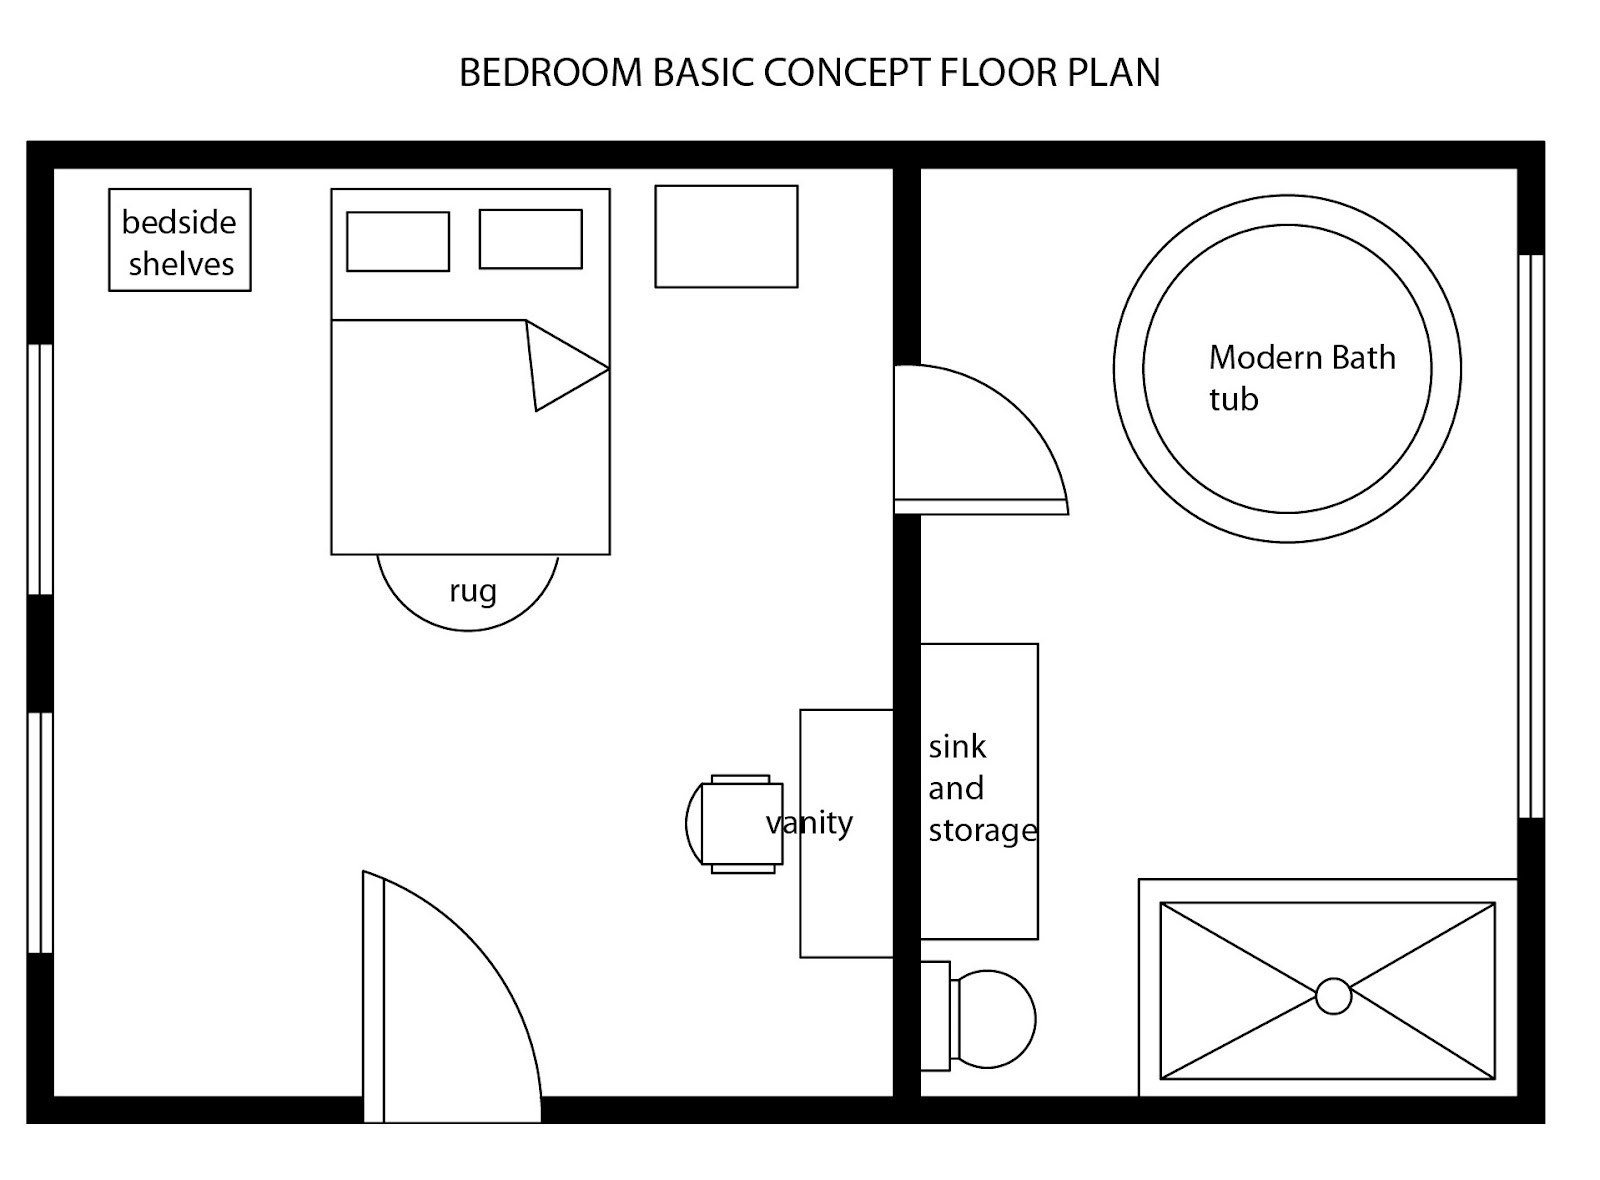 Interior design decor modern bedroom basic floor plan for Free office layout design